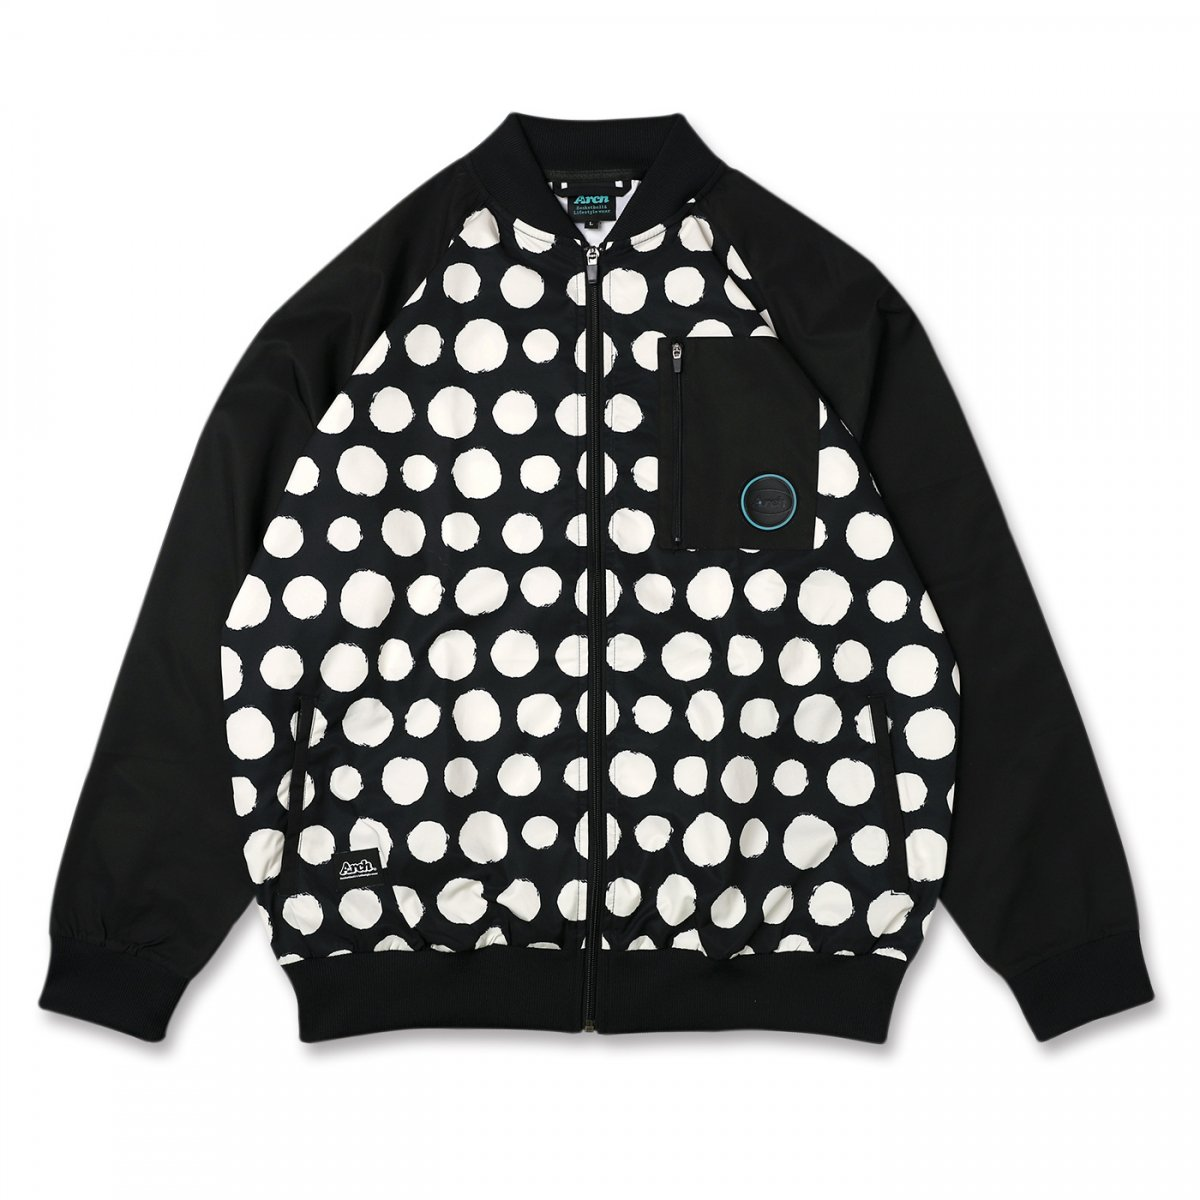 brush dot jacket 【black/vanilla】